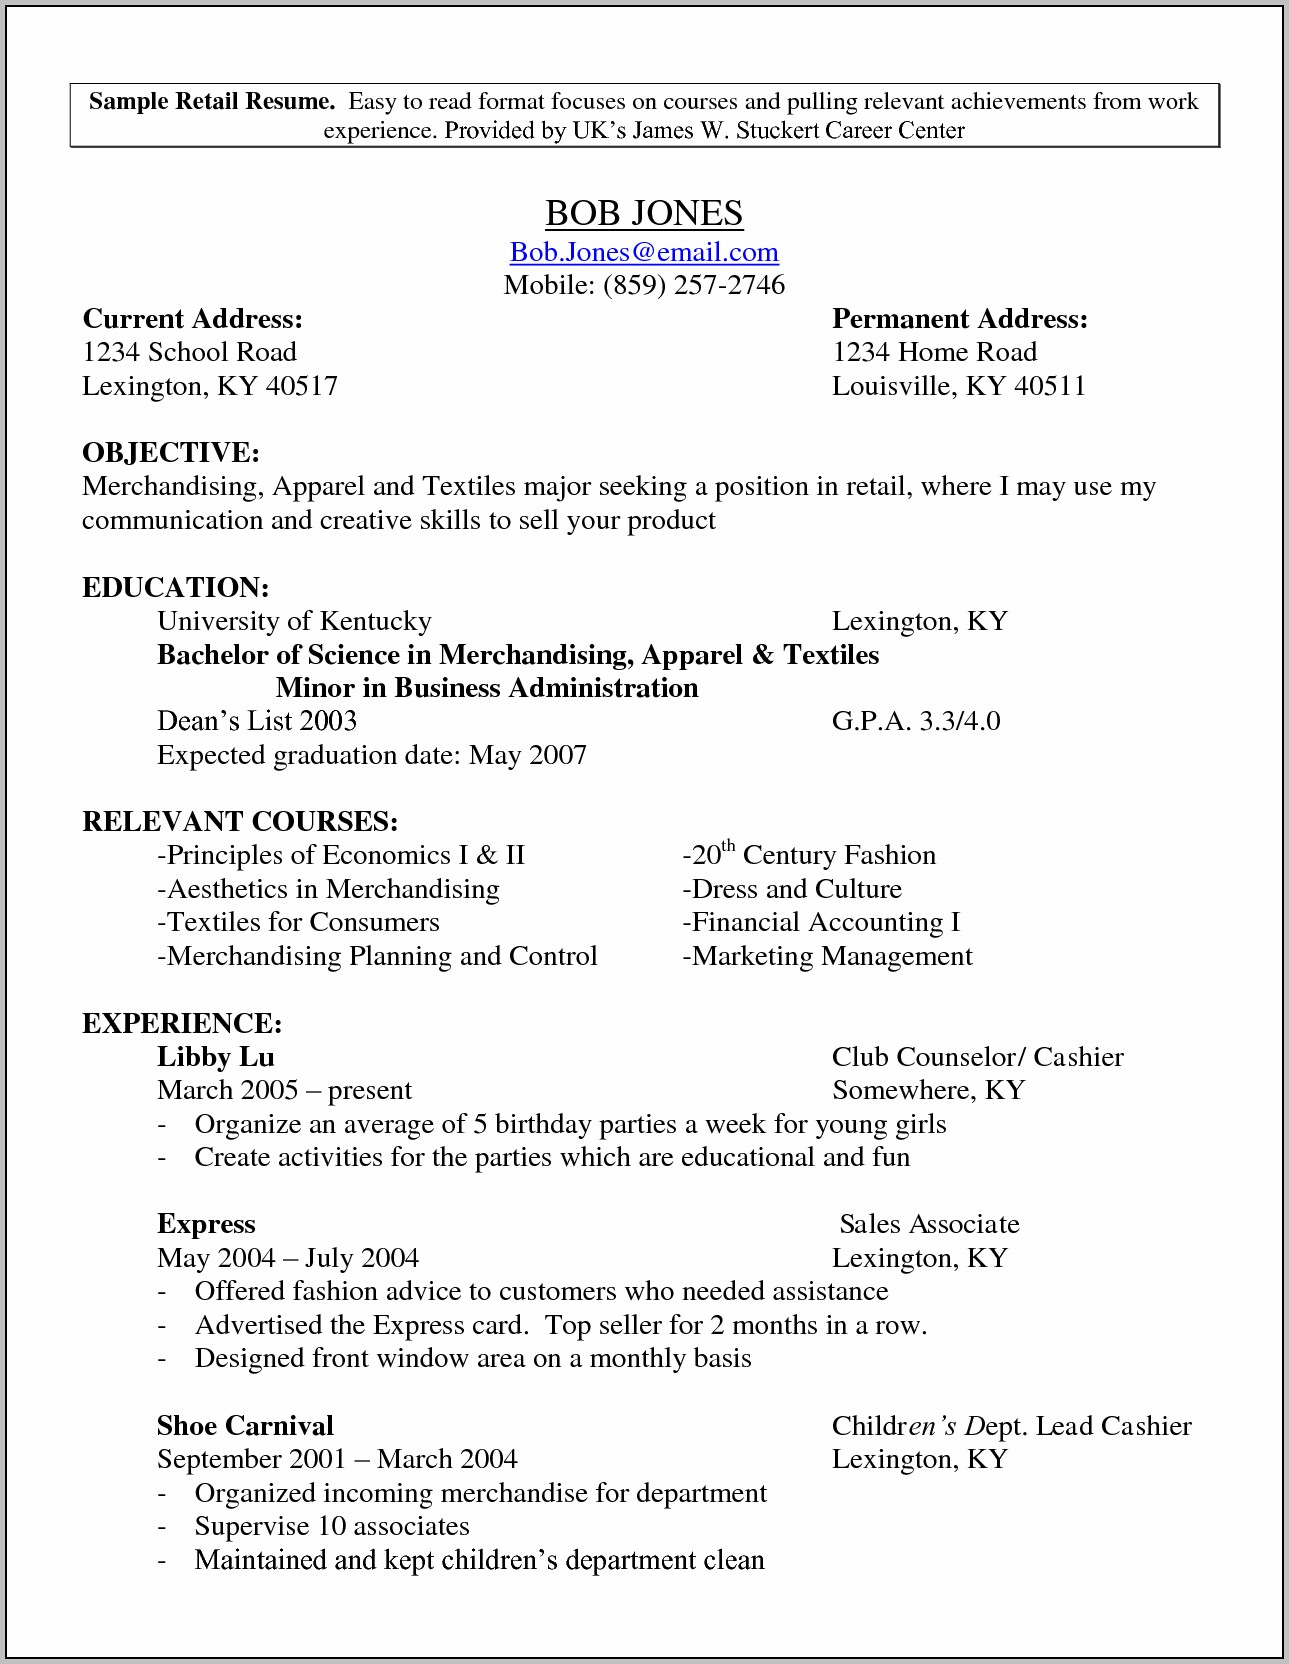 Resume Samples For Retail Store Jobs